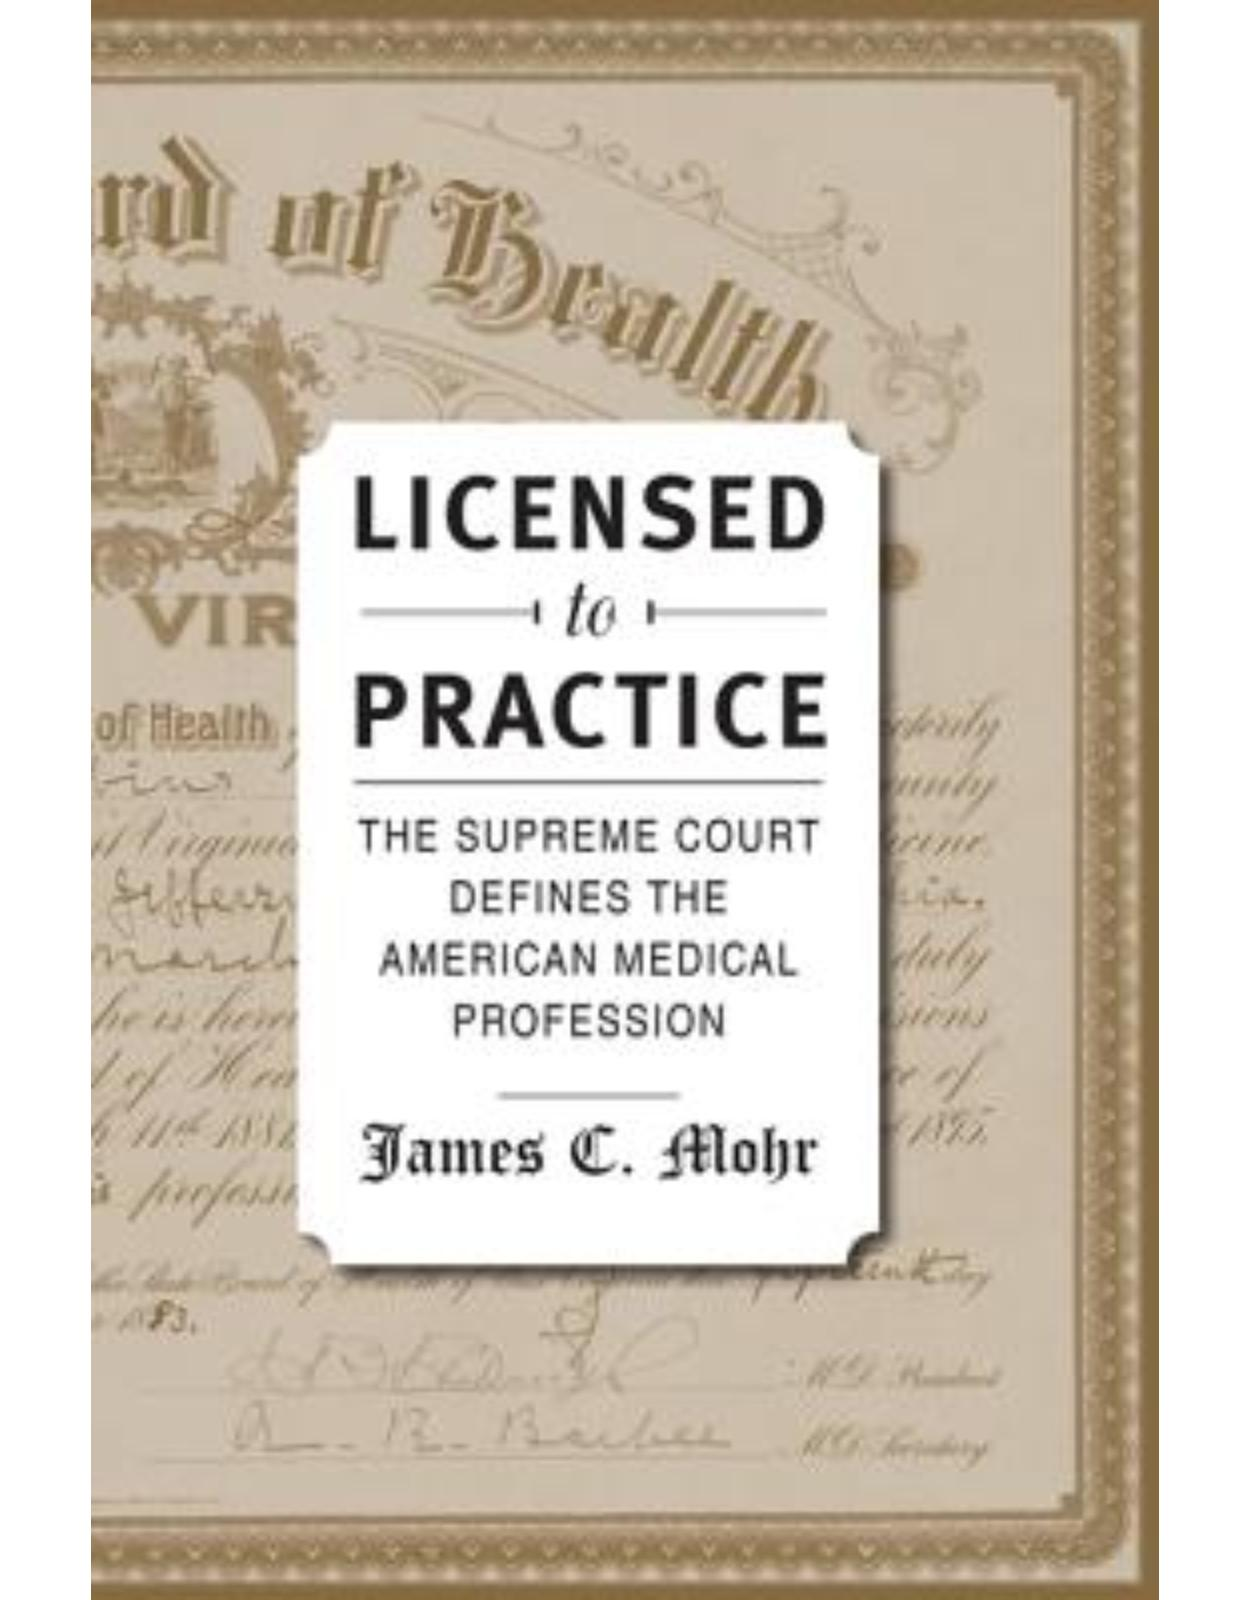 Licensed to Practice. The Supreme Court Defines the American Medical Profession